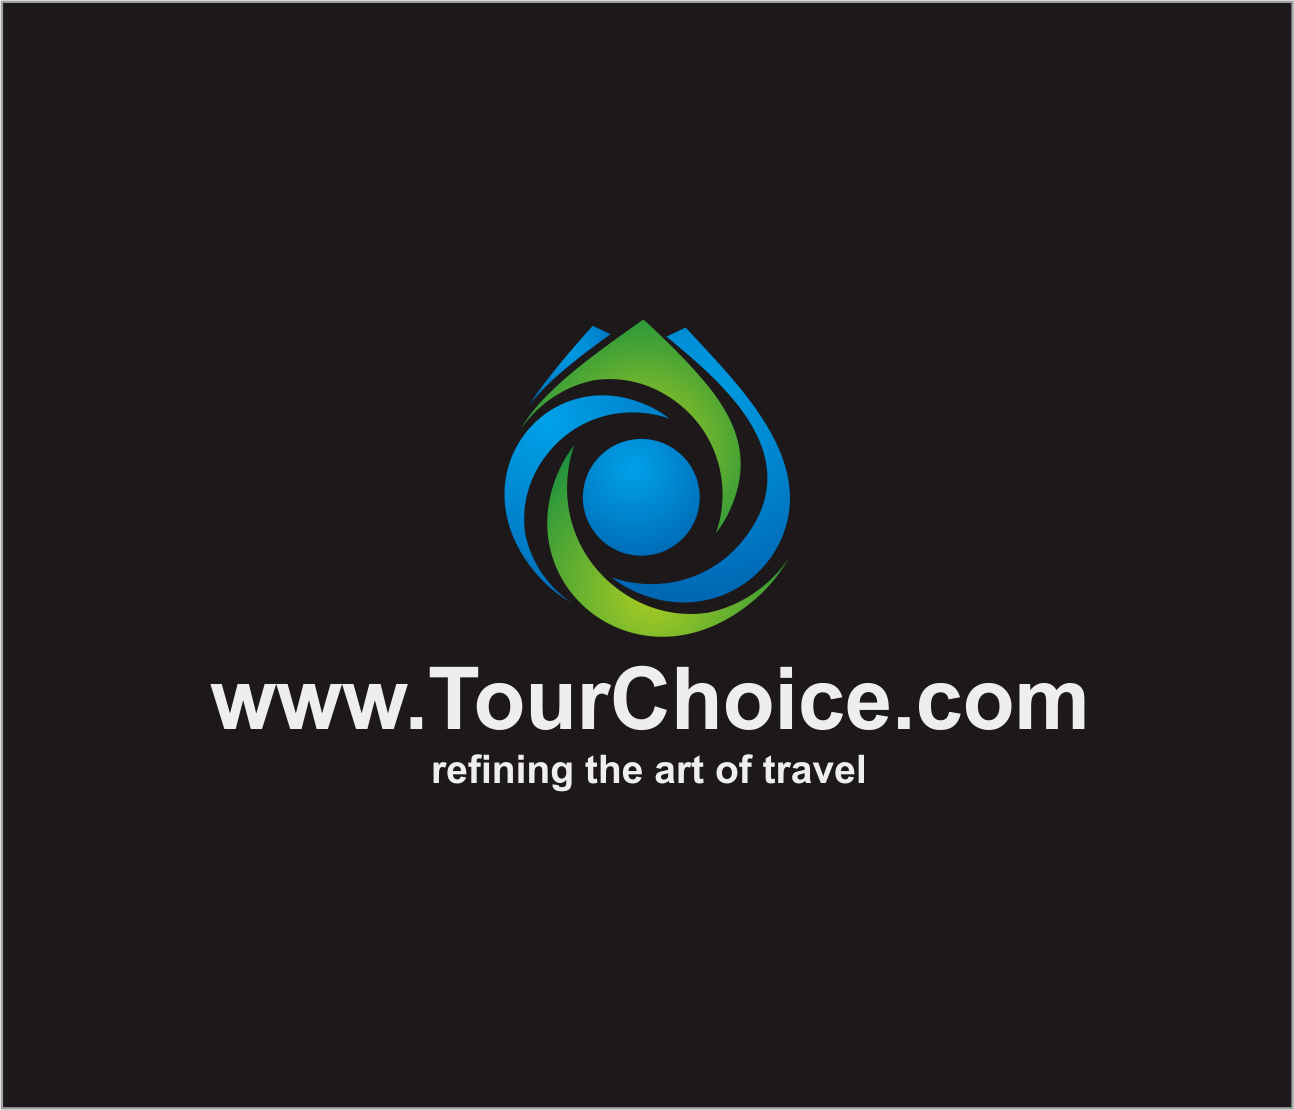 Logo Design by Armada Jamaluddin - Entry No. 47 in the Logo Design Contest www.TourChoice.com Logo Design.